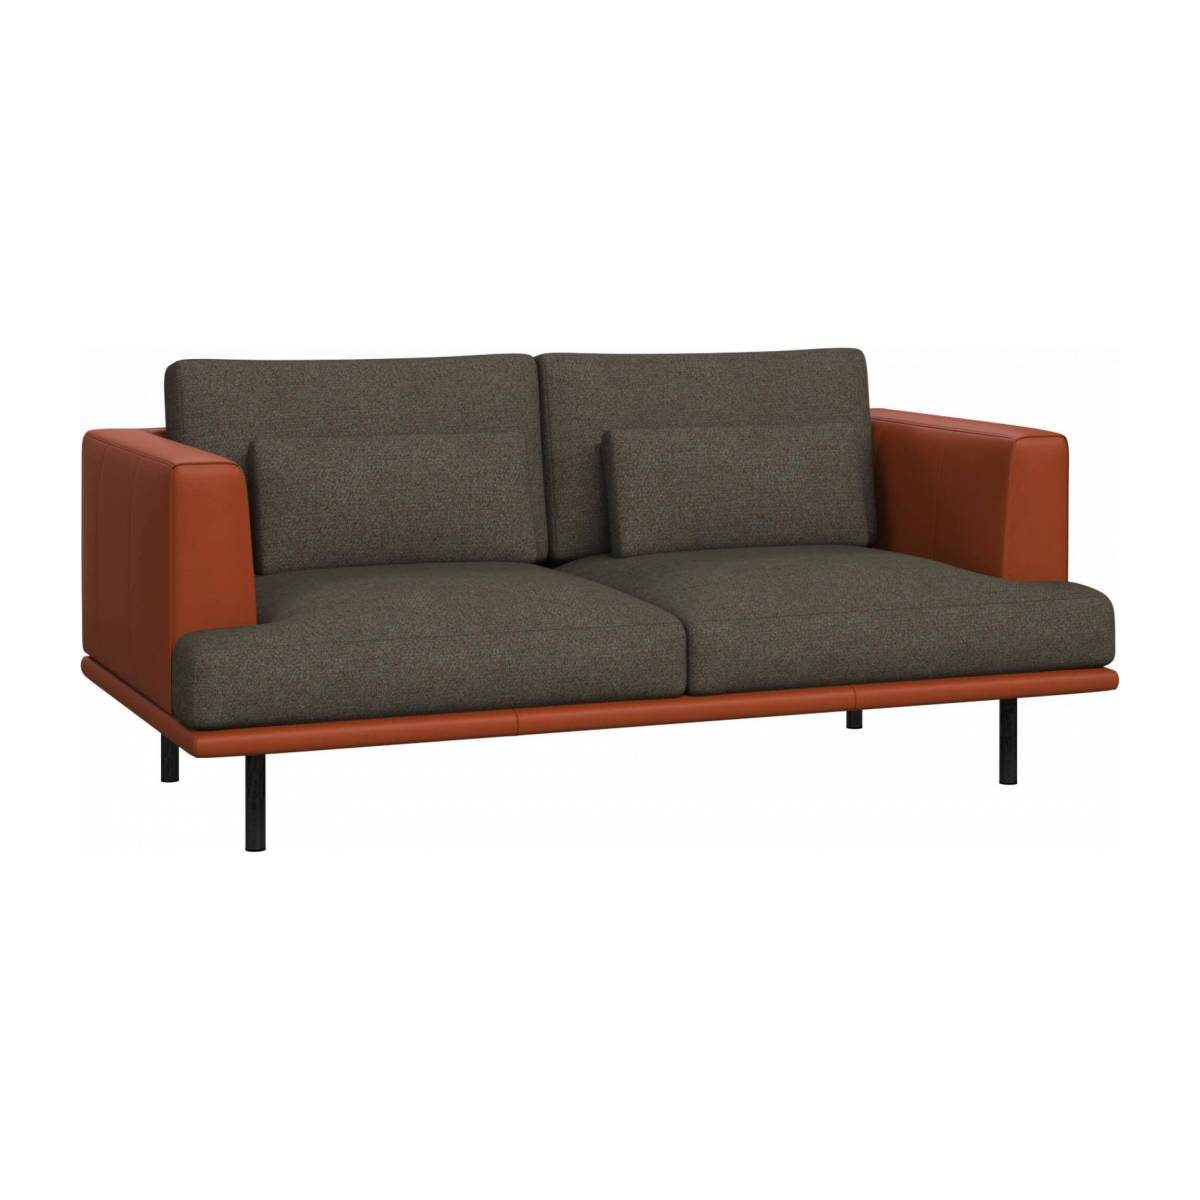 2 seater sofa in Lecce fabric, slade grey with base and armrests in brown leather n°3